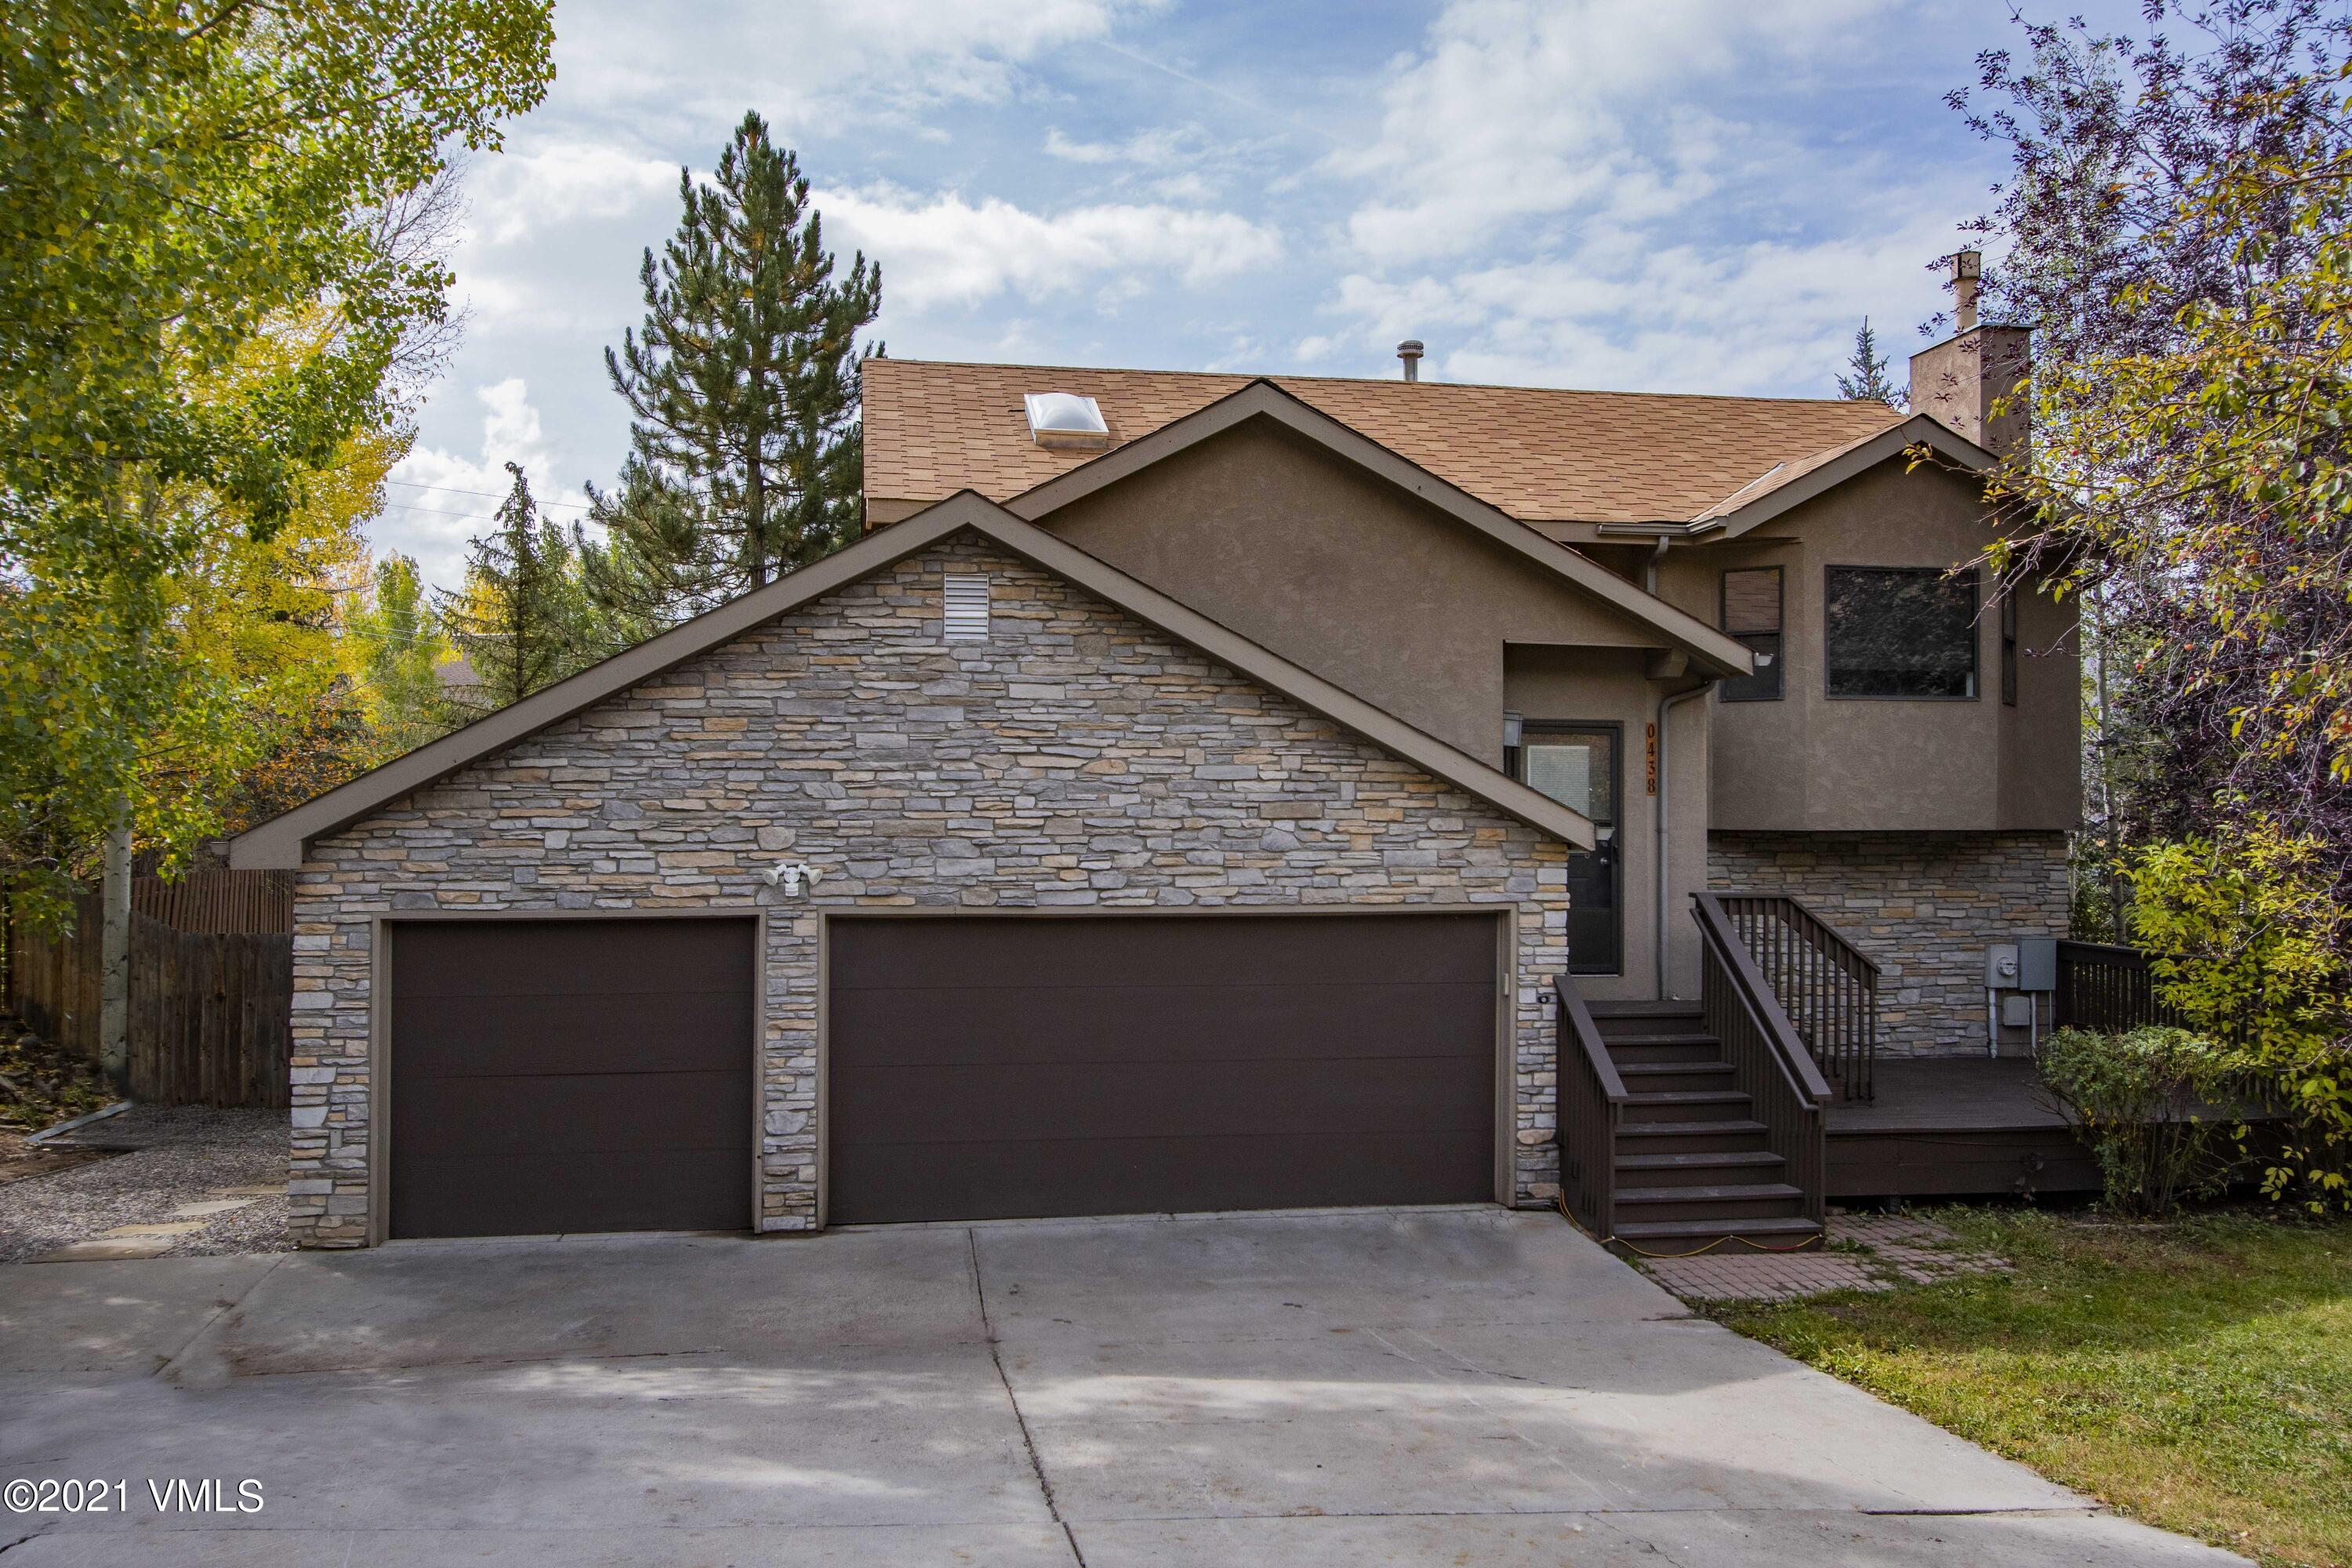 Wonderful opportunity to own a single family home in Edwards with a 3-car garage. Featuring a master bedroom with incredible closet space, a lock-off on the middle level, and gorgeous landscaping with mountain views from multiple decks. Lower level walks out to another deck with a hot tub. Located right next to Berry Creek's hiking and bike trails.